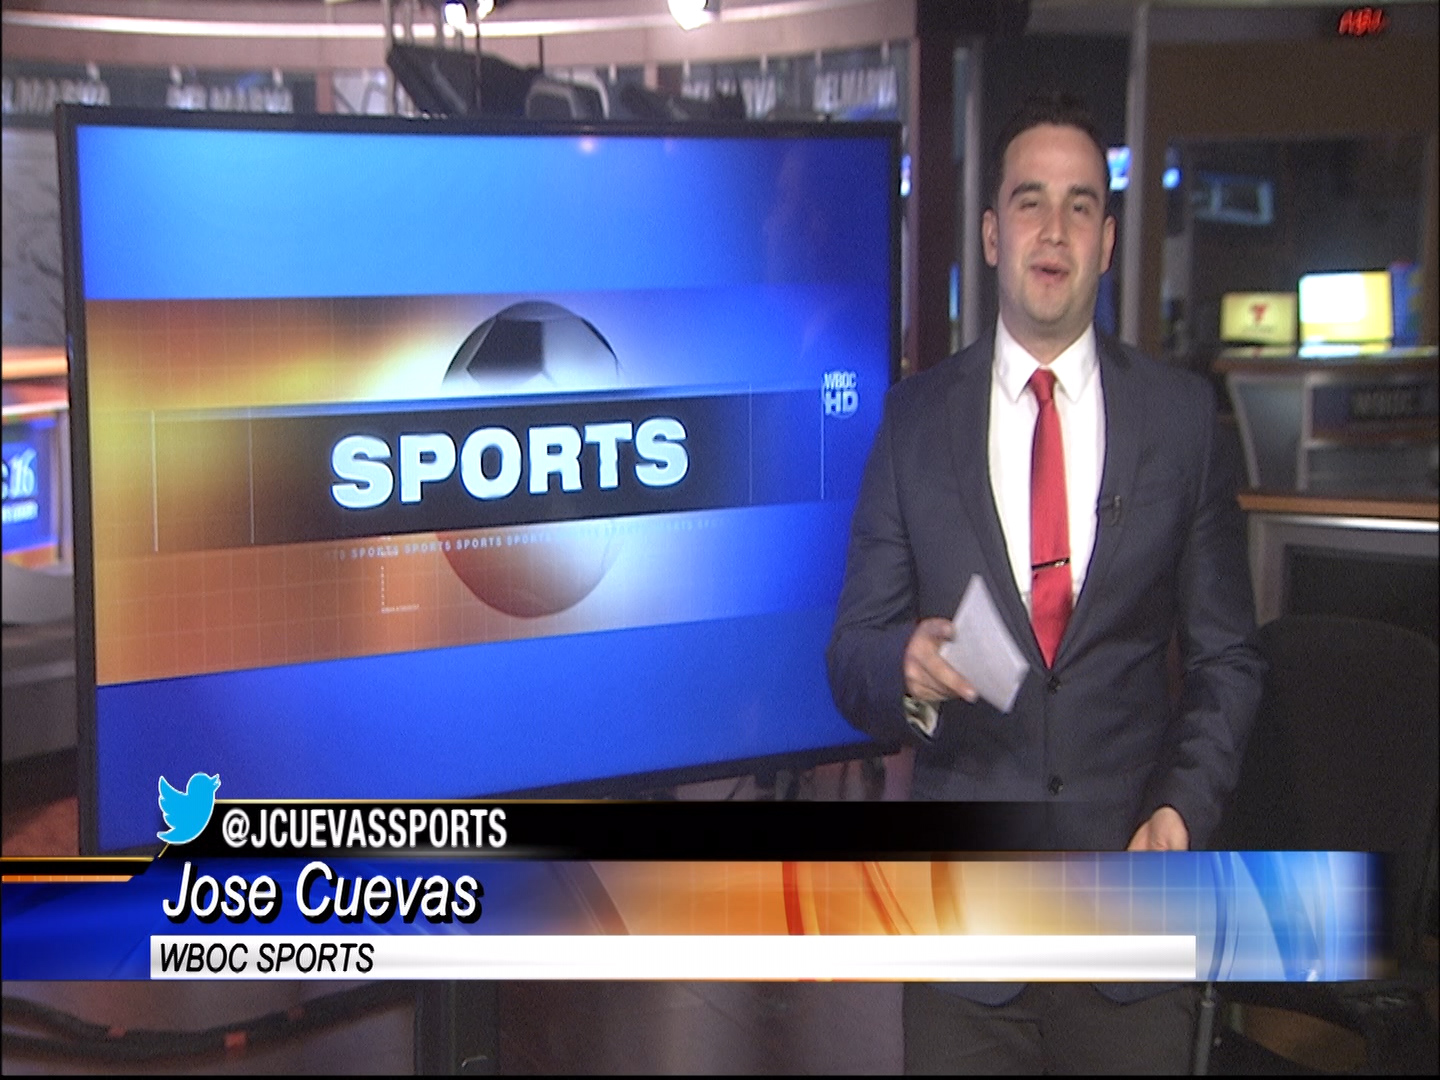 WBOC Sports Report – Sunday April 28, 2019 PART 2